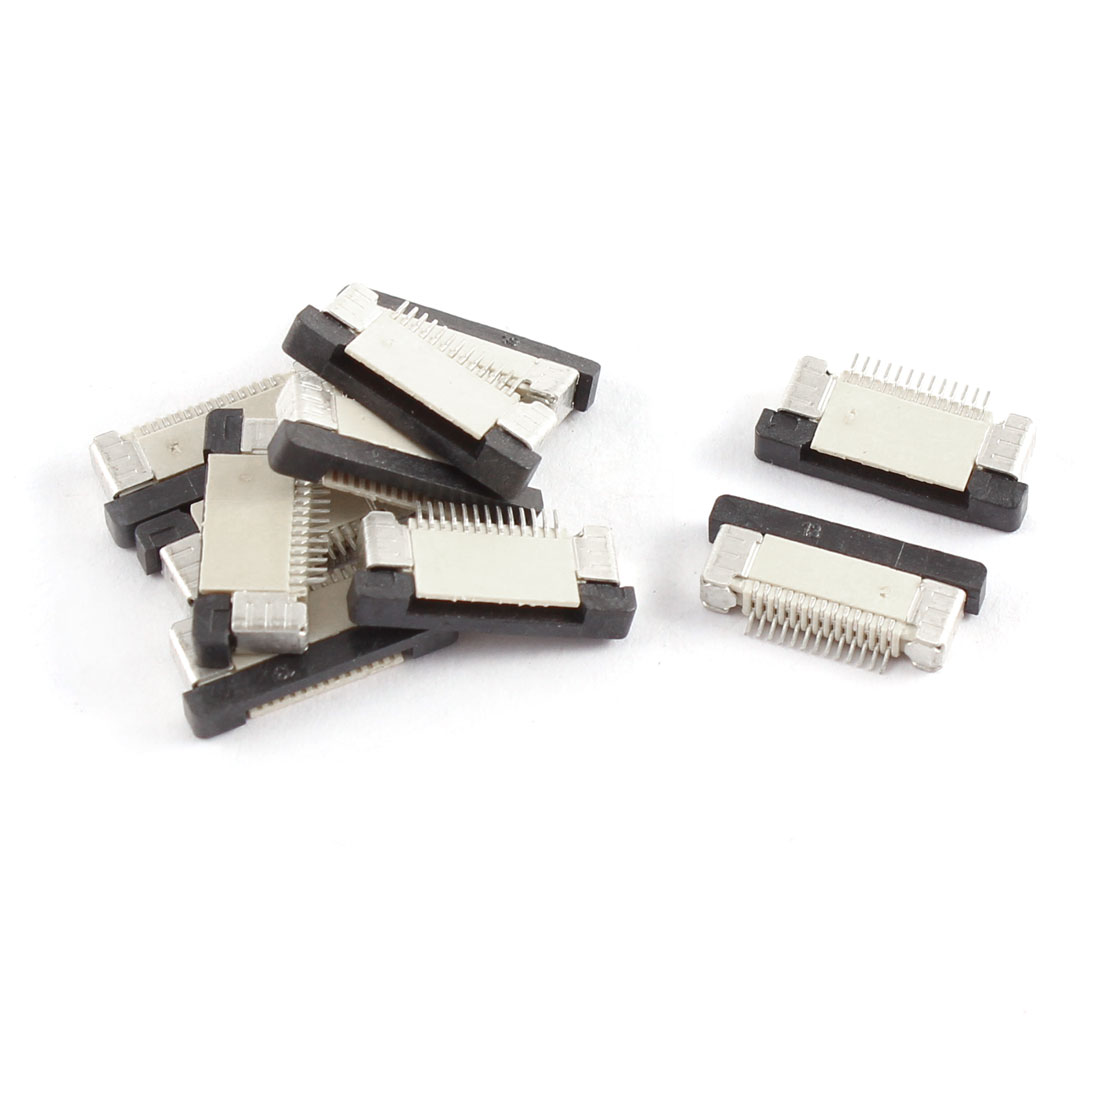 10Pcs Bottom Port 13P 1.0mm Pitch FFC FPC Ribbon Sockets Connector